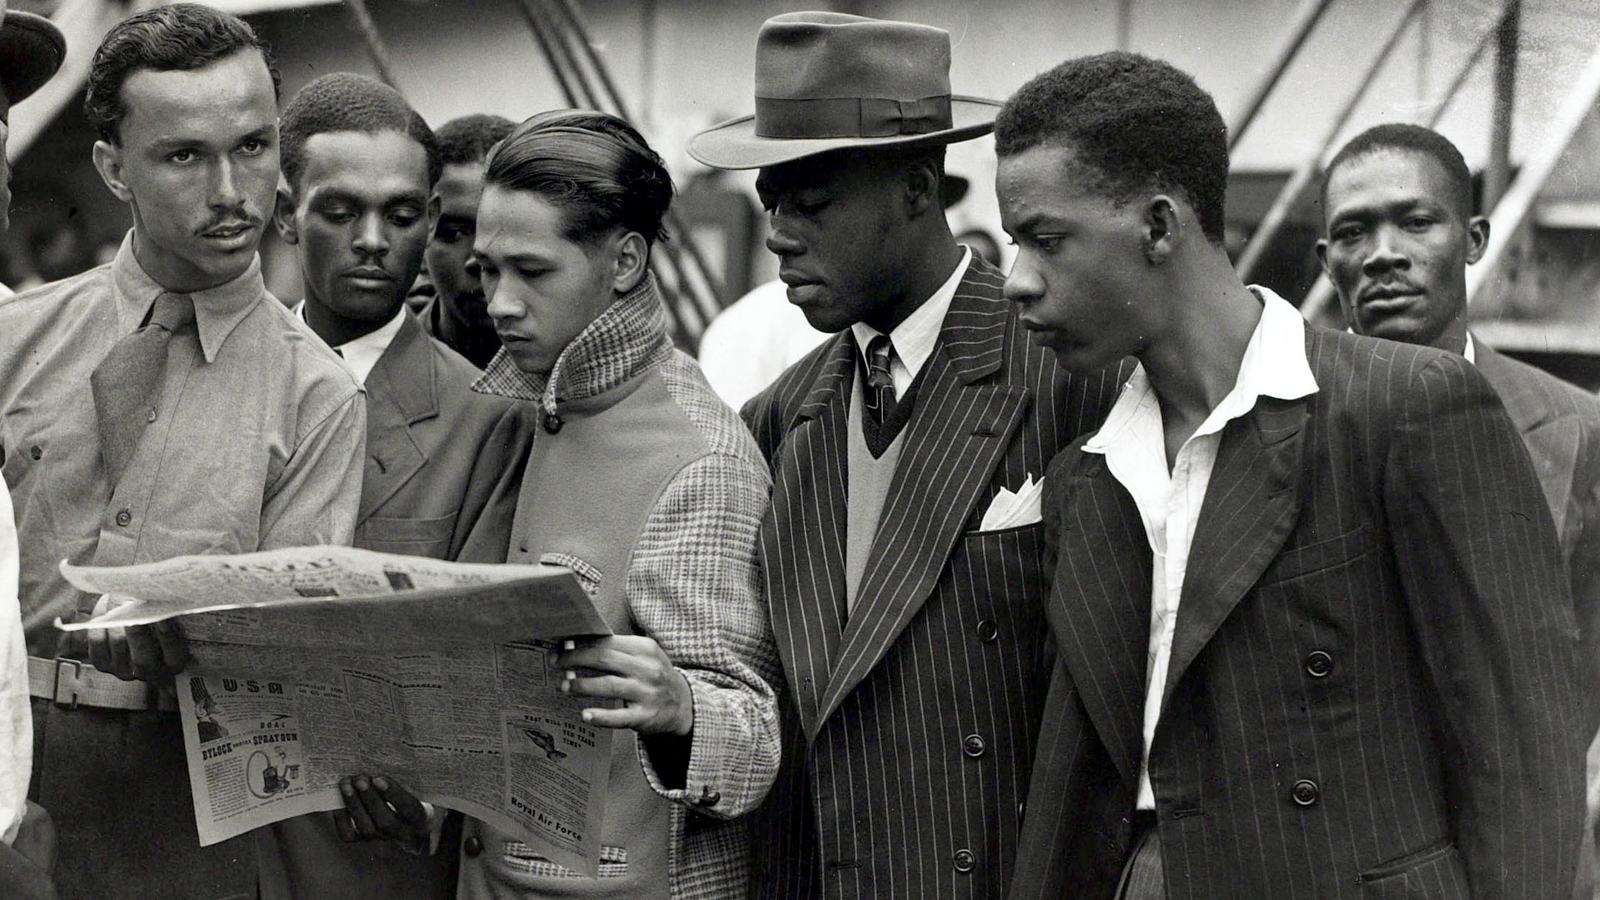 Banner showing 5 men reading a newspaper in 1948